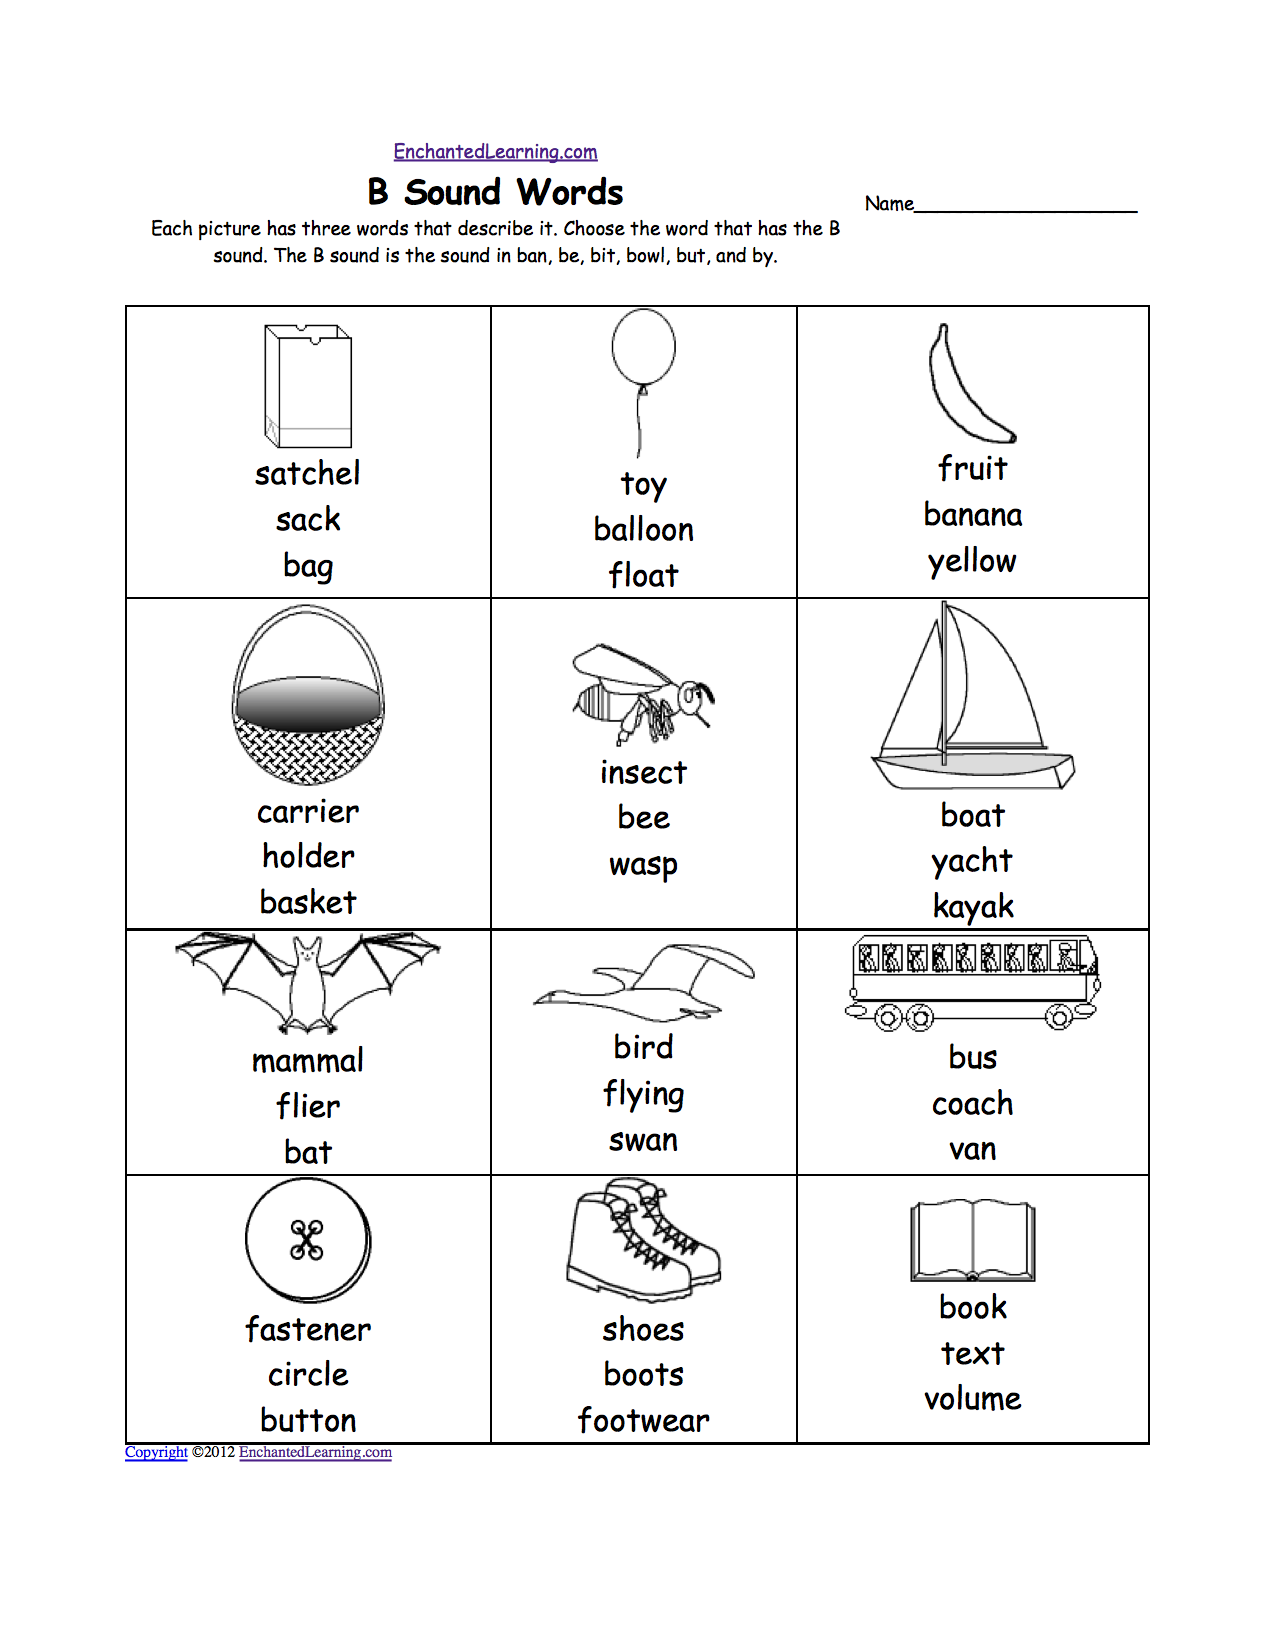 Aldiablosus  Pretty Phonics Worksheets Multiple Choice Worksheets To Print  With Foxy Quotbquot Sound Phonics Worksheet Multiple Choice Each Picture Has Three Words That Describe It Choose The Word That Has A Quotbquot Sound The Quotbquot Sound Is The Sound  With Divine Soft G Sound Worksheets Also Grade  Math Probability Worksheets In Addition Preschool Worksheets Age  Free Printable And Push And Pull Worksheets For Kindergarten As Well As Dr Suess Worksheets Additionally Worksheet D Taxonomic Key Answers From Enchantedlearningcom With Aldiablosus  Foxy Phonics Worksheets Multiple Choice Worksheets To Print  With Divine Quotbquot Sound Phonics Worksheet Multiple Choice Each Picture Has Three Words That Describe It Choose The Word That Has A Quotbquot Sound The Quotbquot Sound Is The Sound  And Pretty Soft G Sound Worksheets Also Grade  Math Probability Worksheets In Addition Preschool Worksheets Age  Free Printable From Enchantedlearningcom